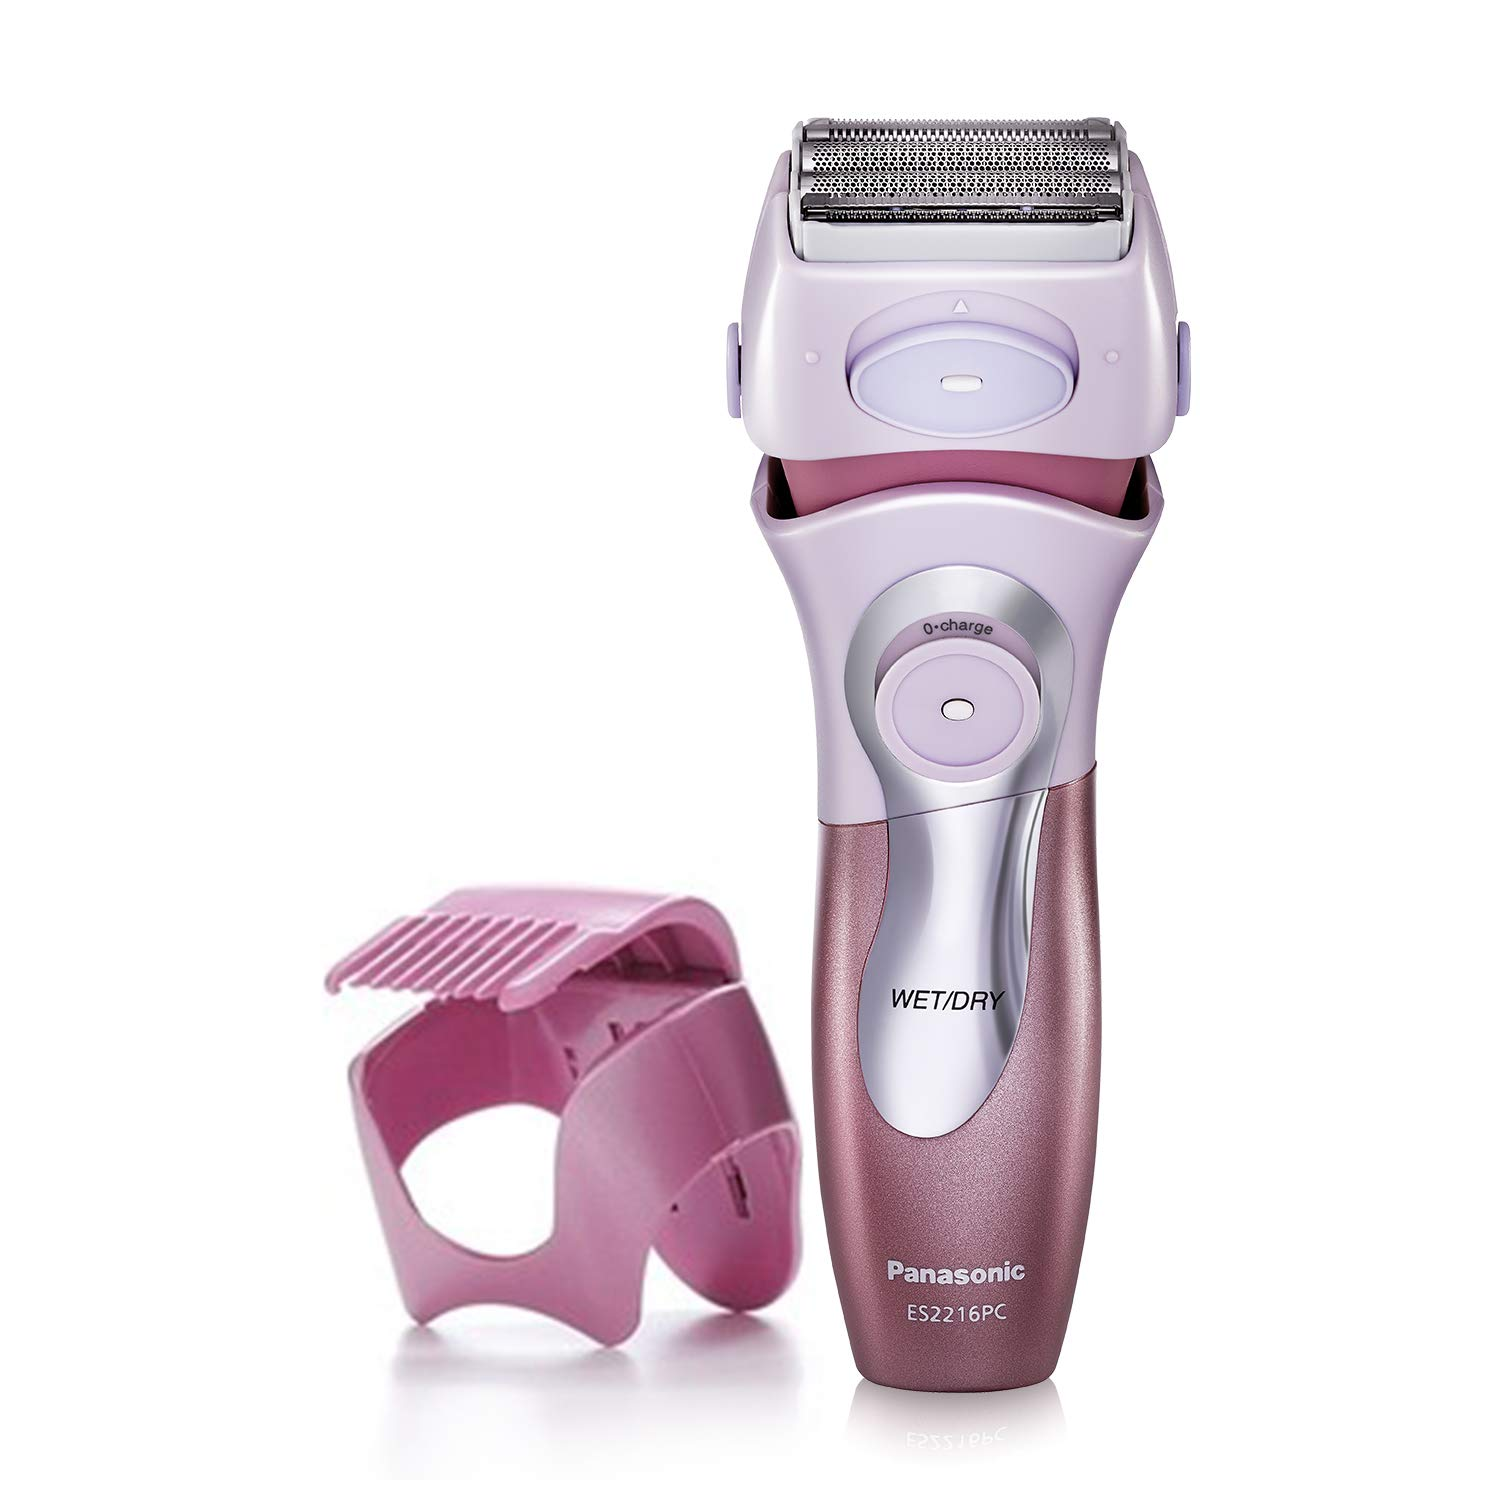 Panasonic Electric Shaver for Women, Cordless 4 Blade Razor, Close Curves,  Bikini Attachment, Pop-Up Trimmer, Wet Dry Operation - ES2216PC